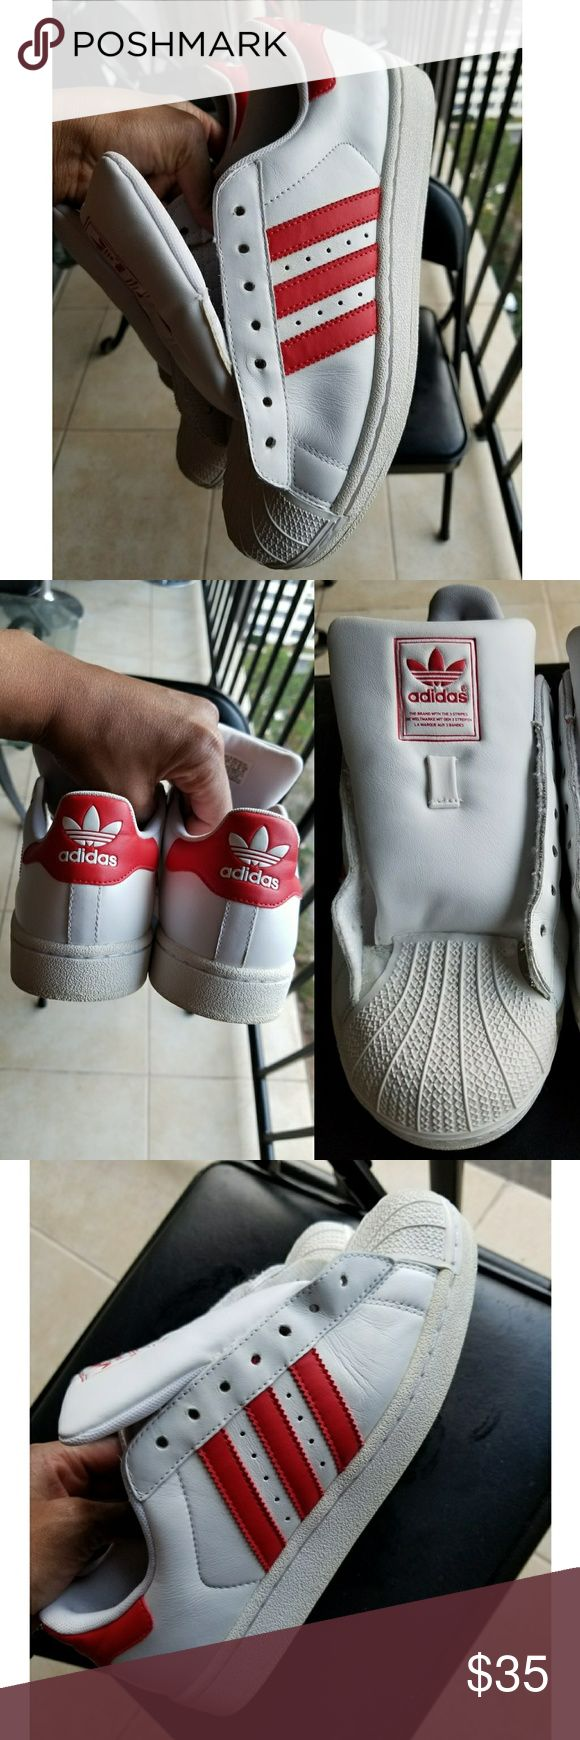 💕PRE-LOVED💕 EUC Men's Adidas originals Gently worn men's Adidas,  classic style, shoe strings included(removed for cleaning) No Box adidas Shoes Sneakers